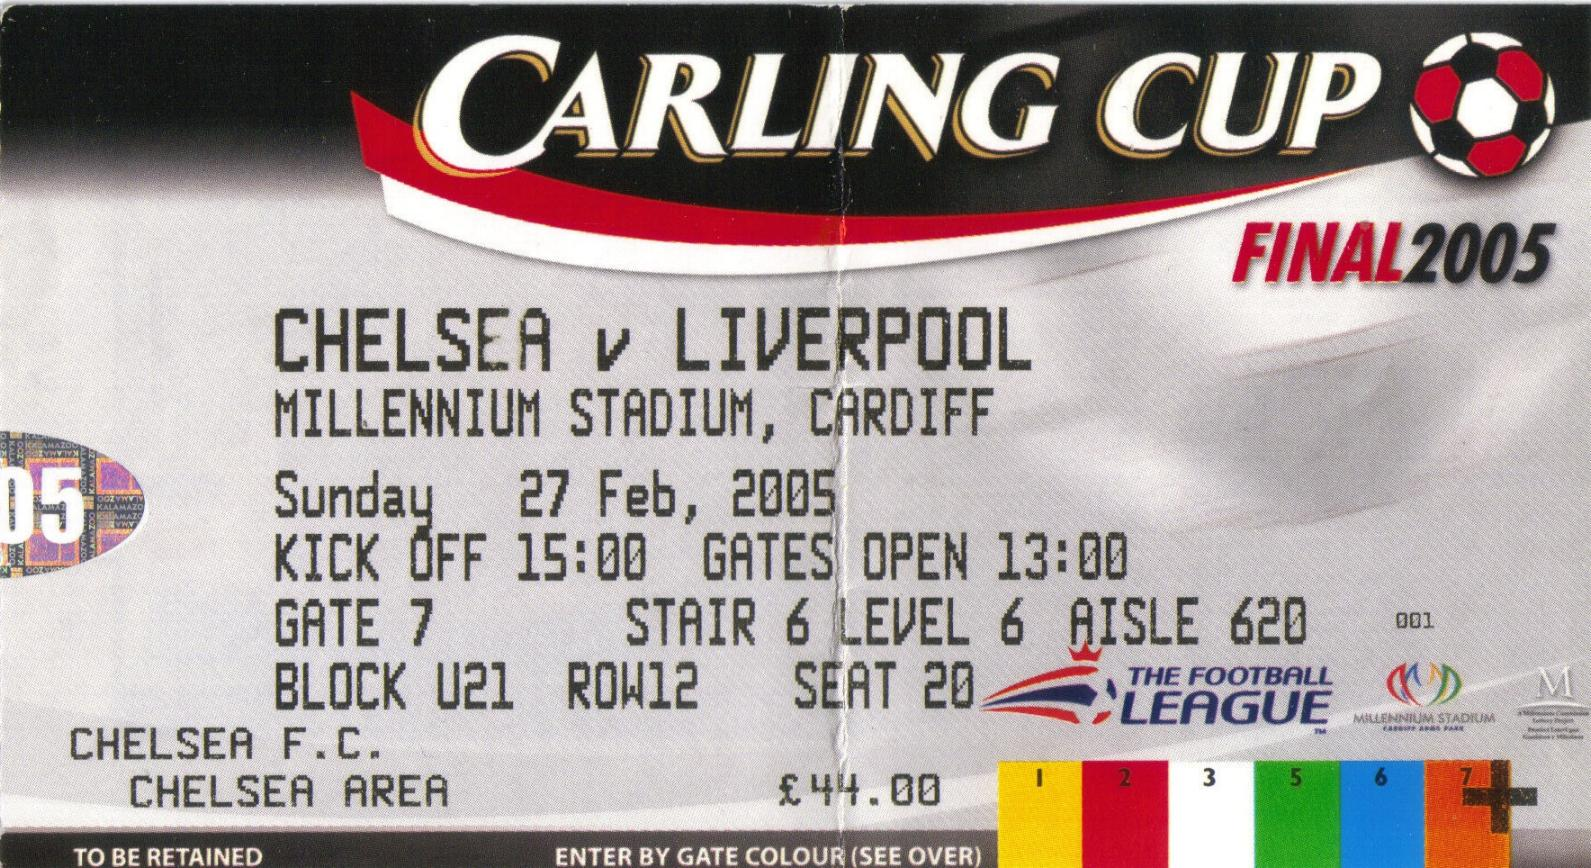 2005 CARLING CUP FINAL TICKET - CHELSEA v LIVERPOOL